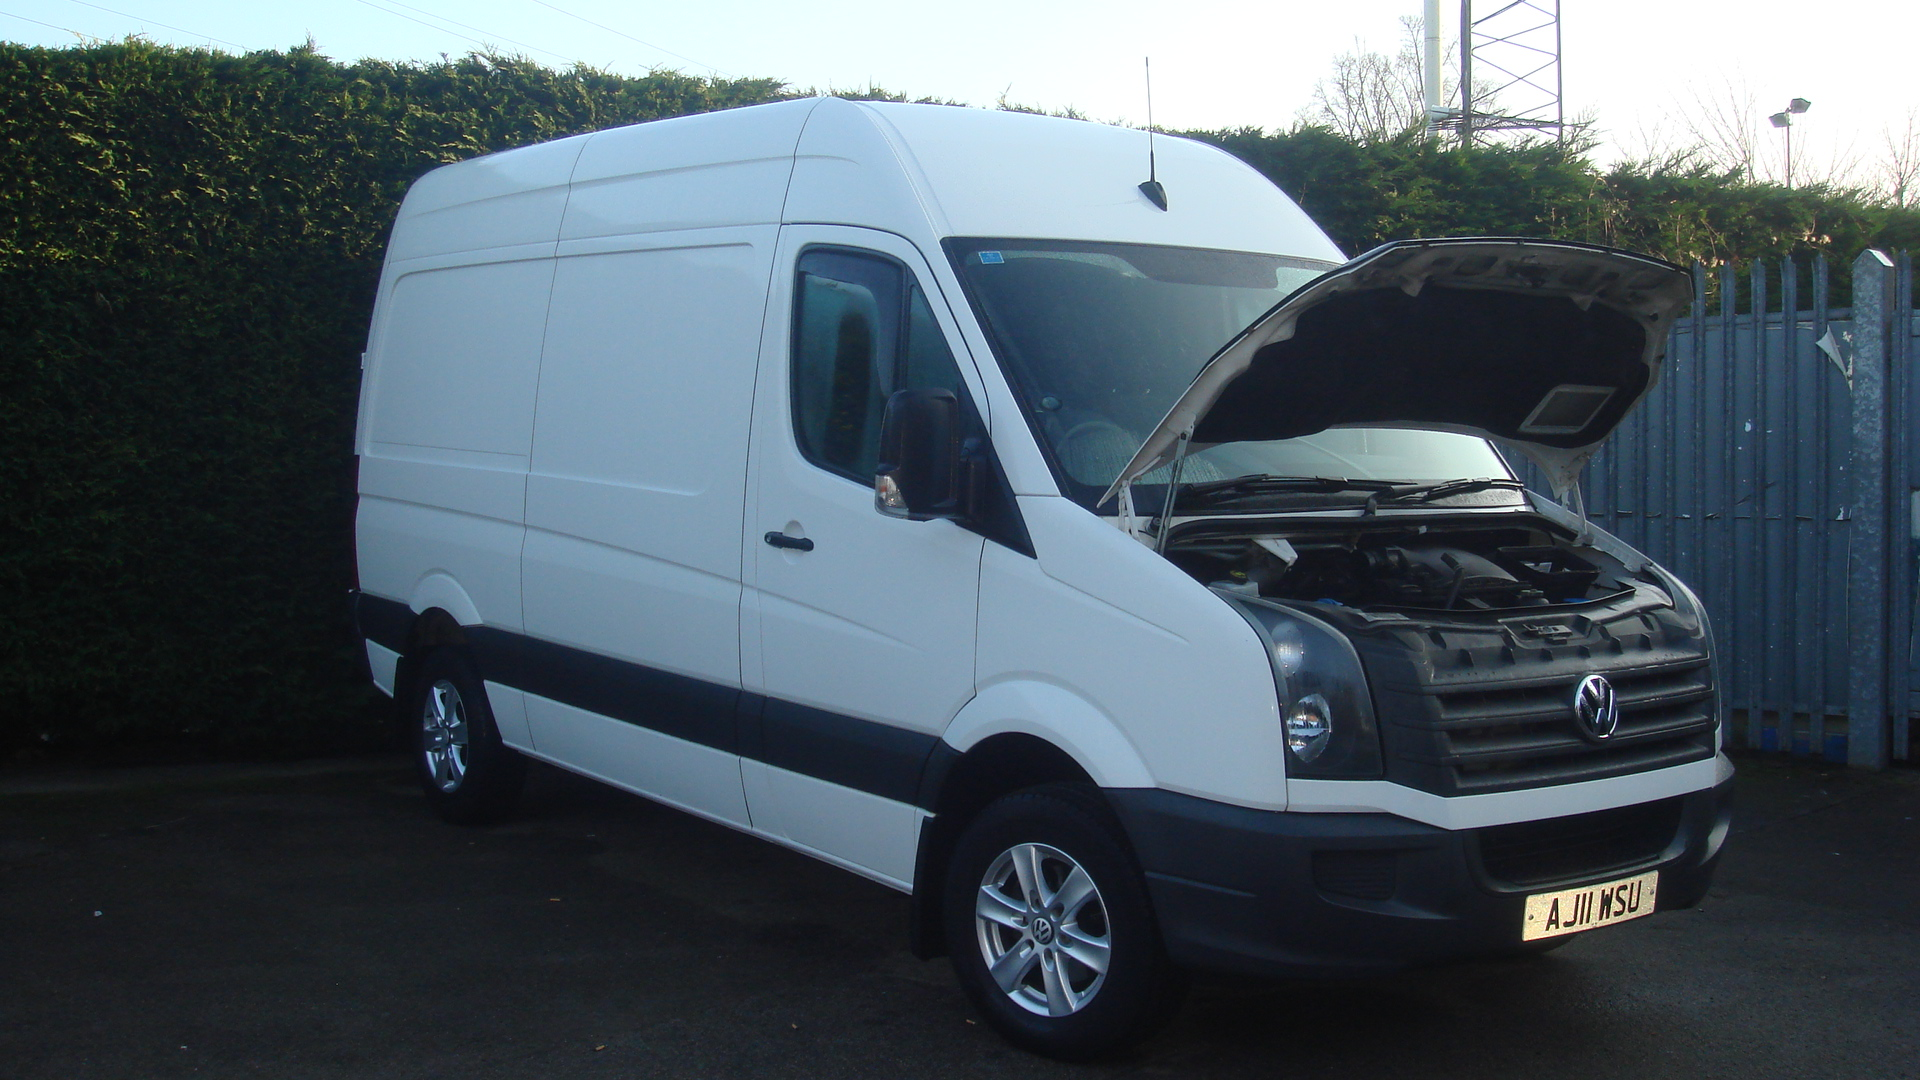 Vw Crafer Coolant Loss Problems Engine Second Generation Crafter Vans Made After 2011 Fitted With 20 Tdi Cr Or Bi Engines Suffer This Problem Can Happen At